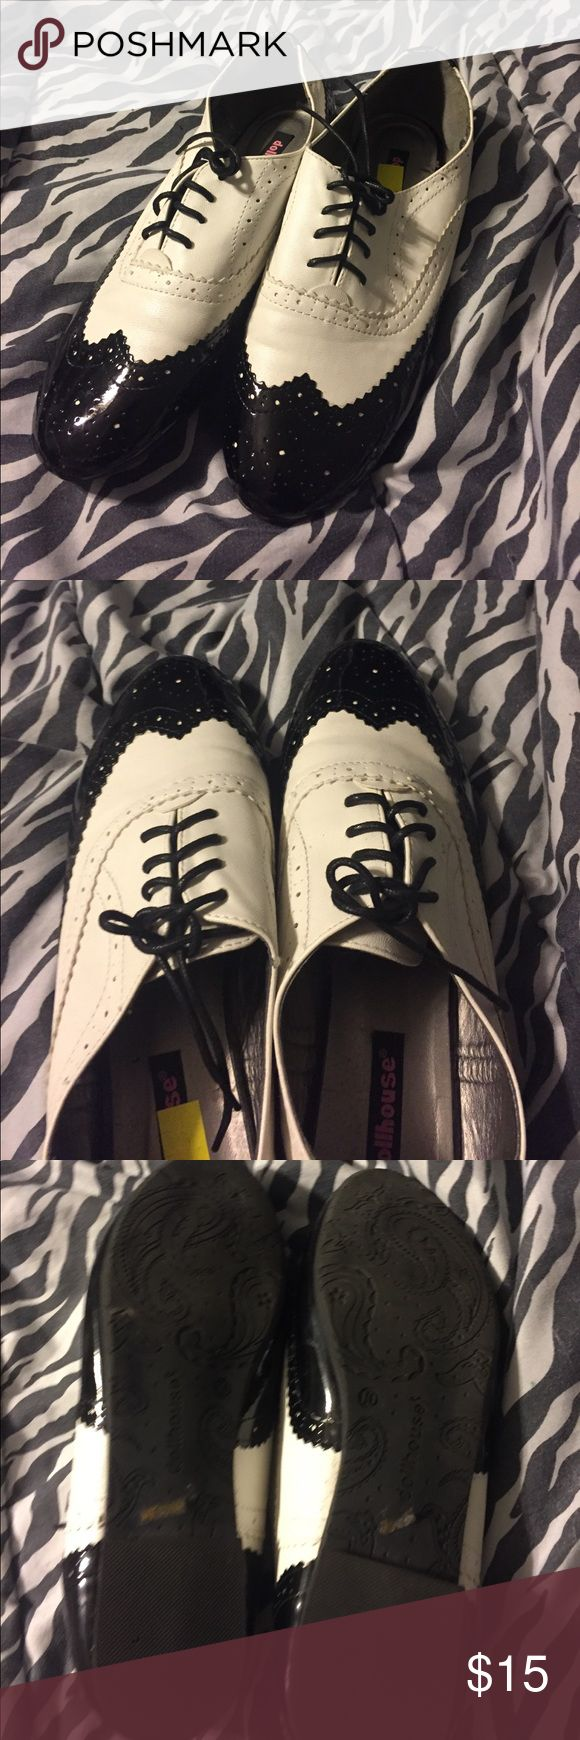 Oxford like shoes Barely worn. Super comfy and cute for a vintage look! Dollhouse Shoes Flats & Loafers